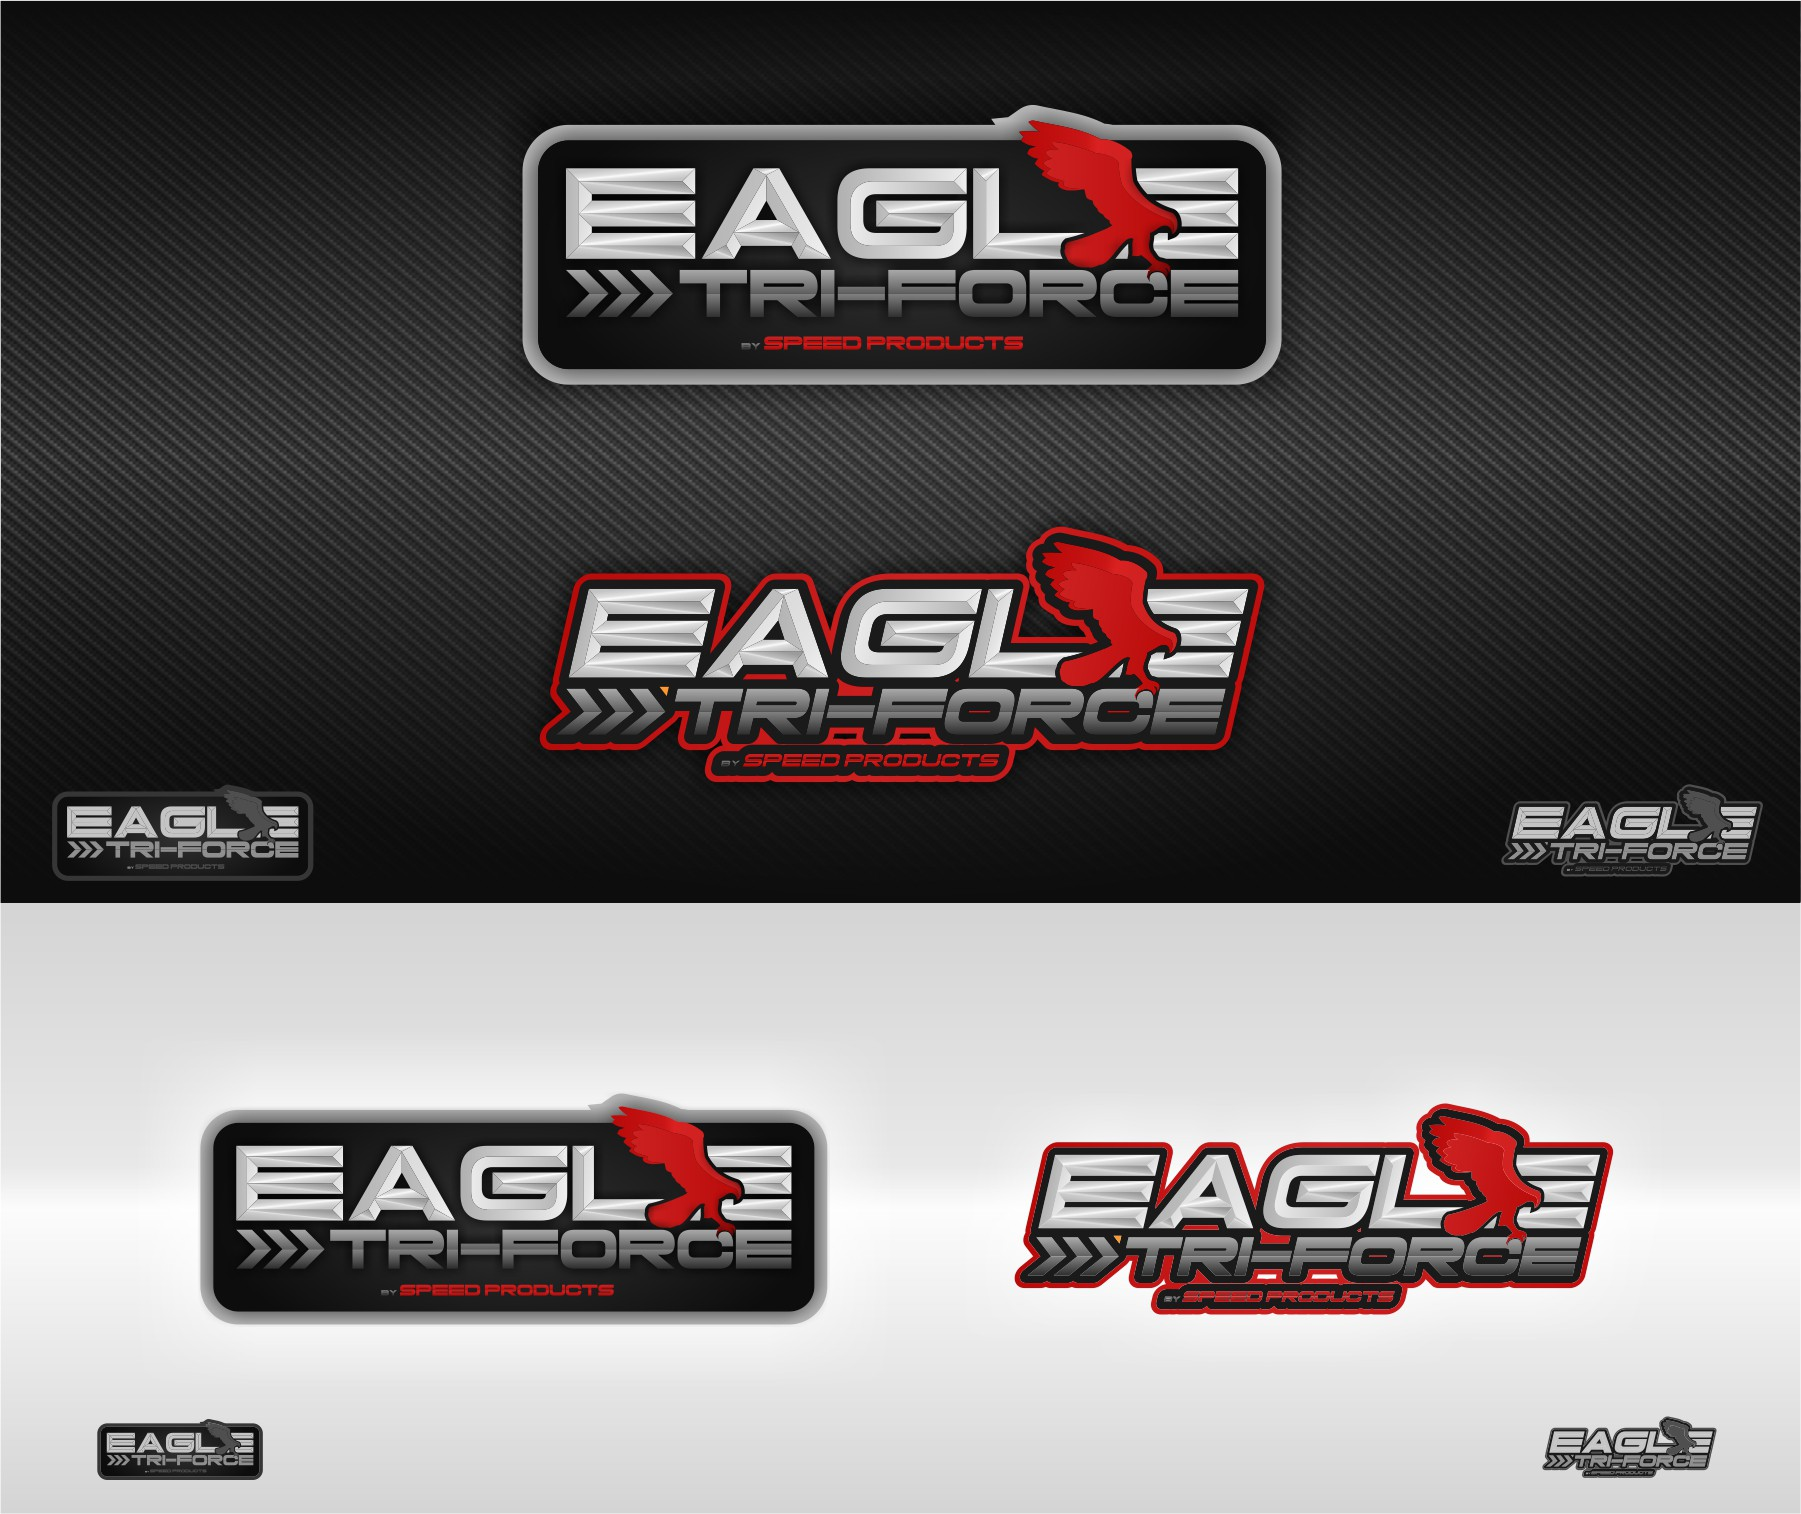 New Aggressive Logo Design for our new Motorcycle Exhaust!